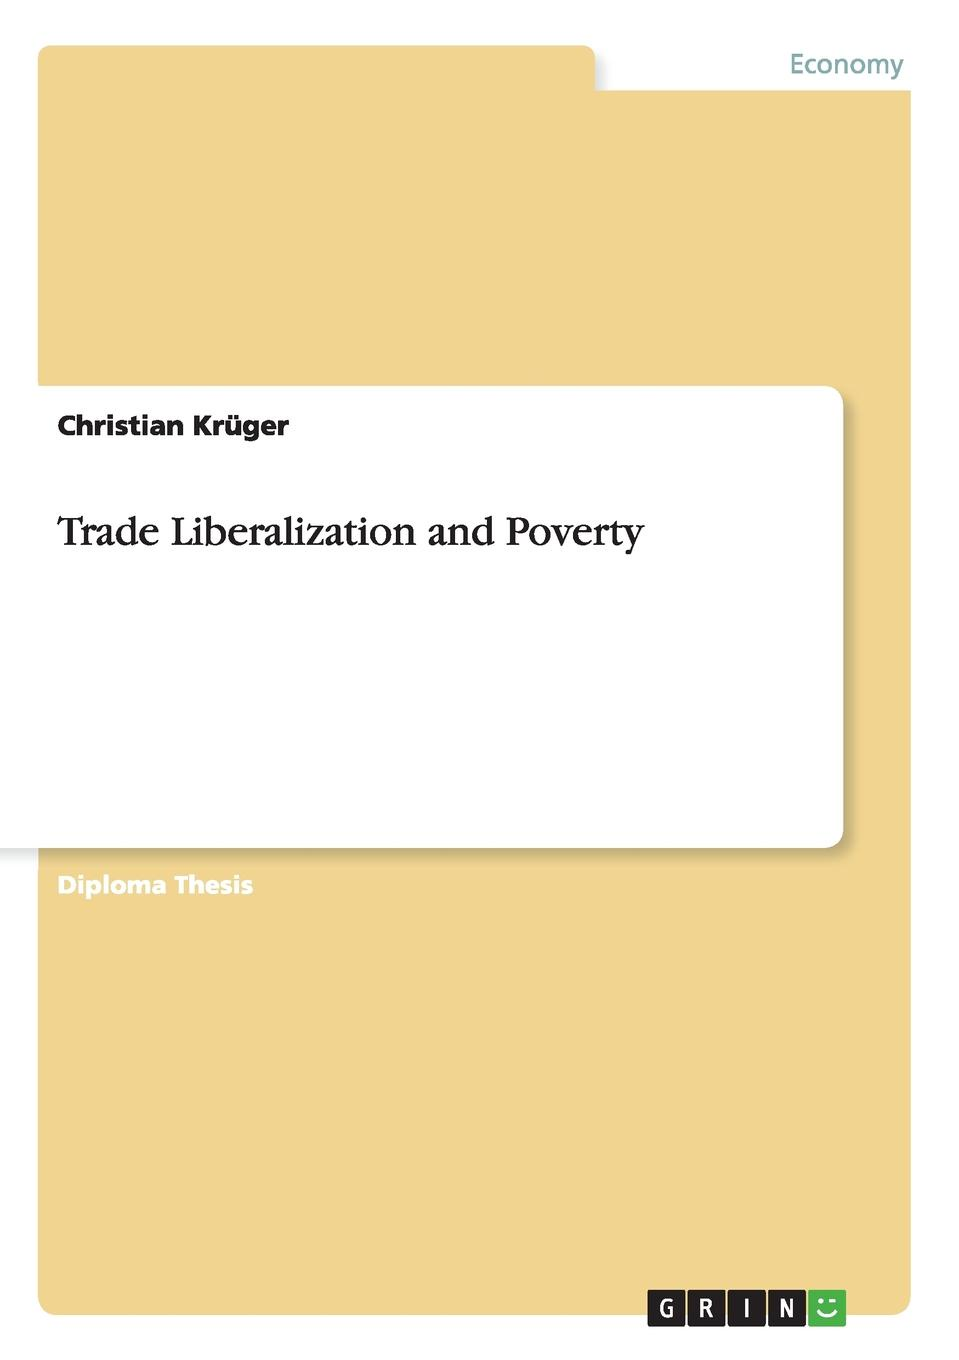 Christian Krüger Trade Liberalization and Poverty vishaal kishore ricardo s gauntlet economic fiction and the flawed case for free trade